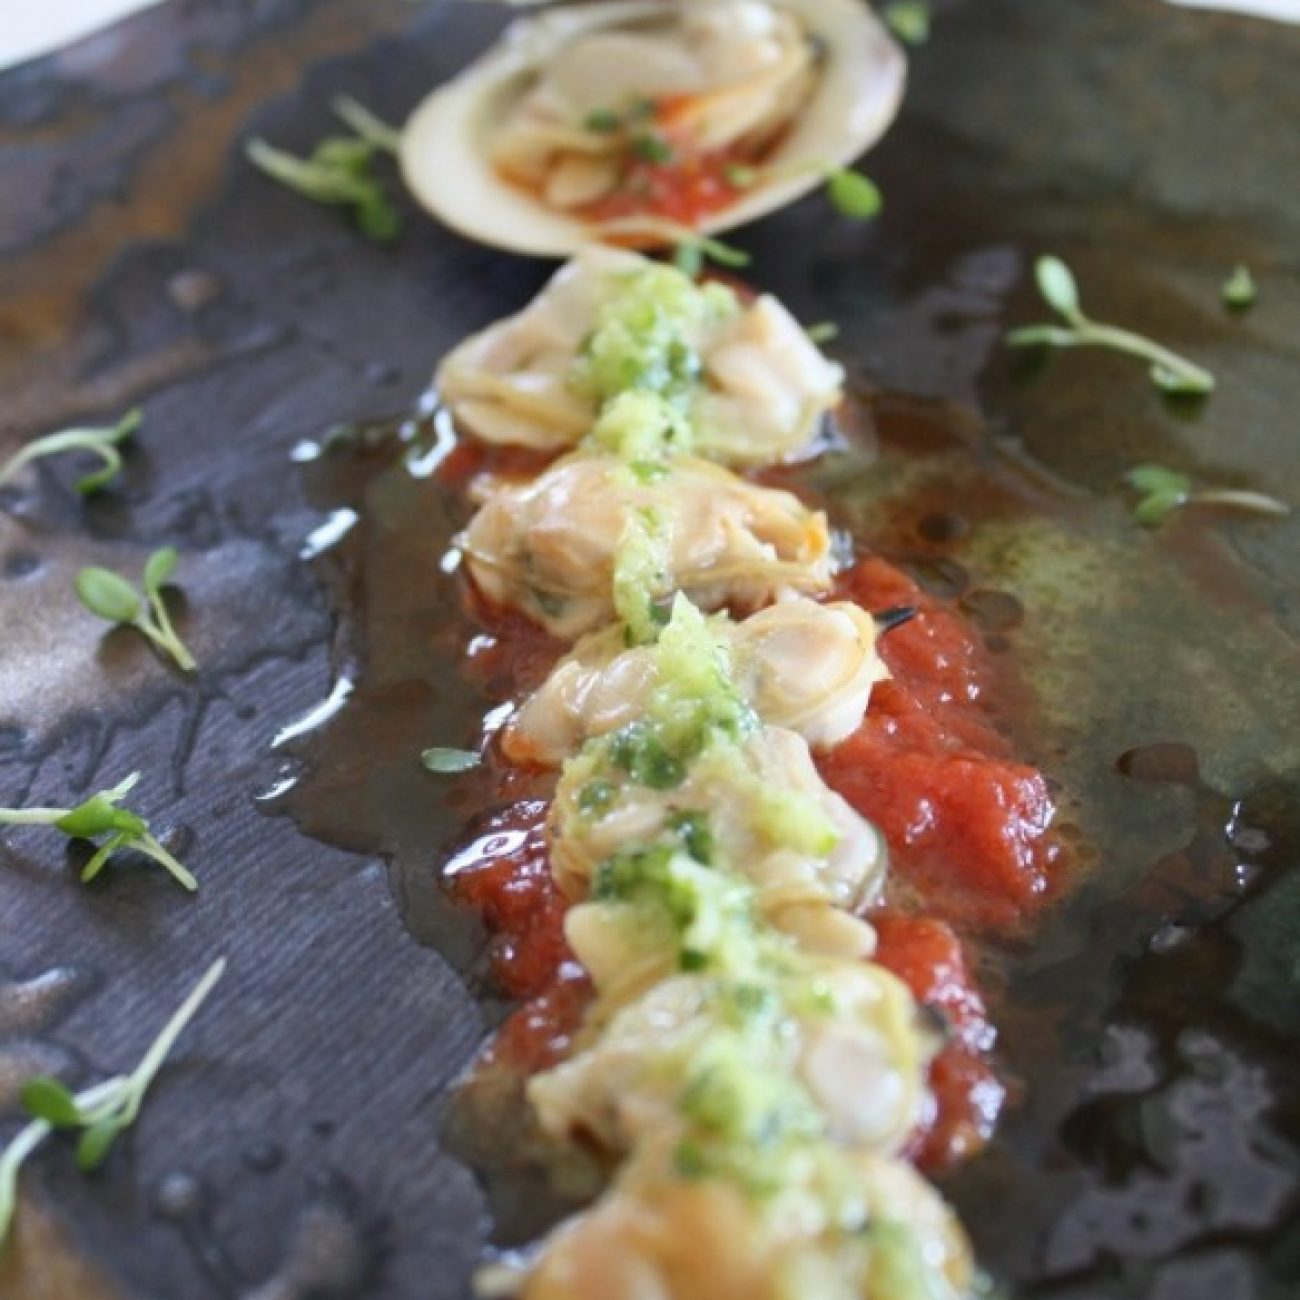 Clams with Tomato and Garlic